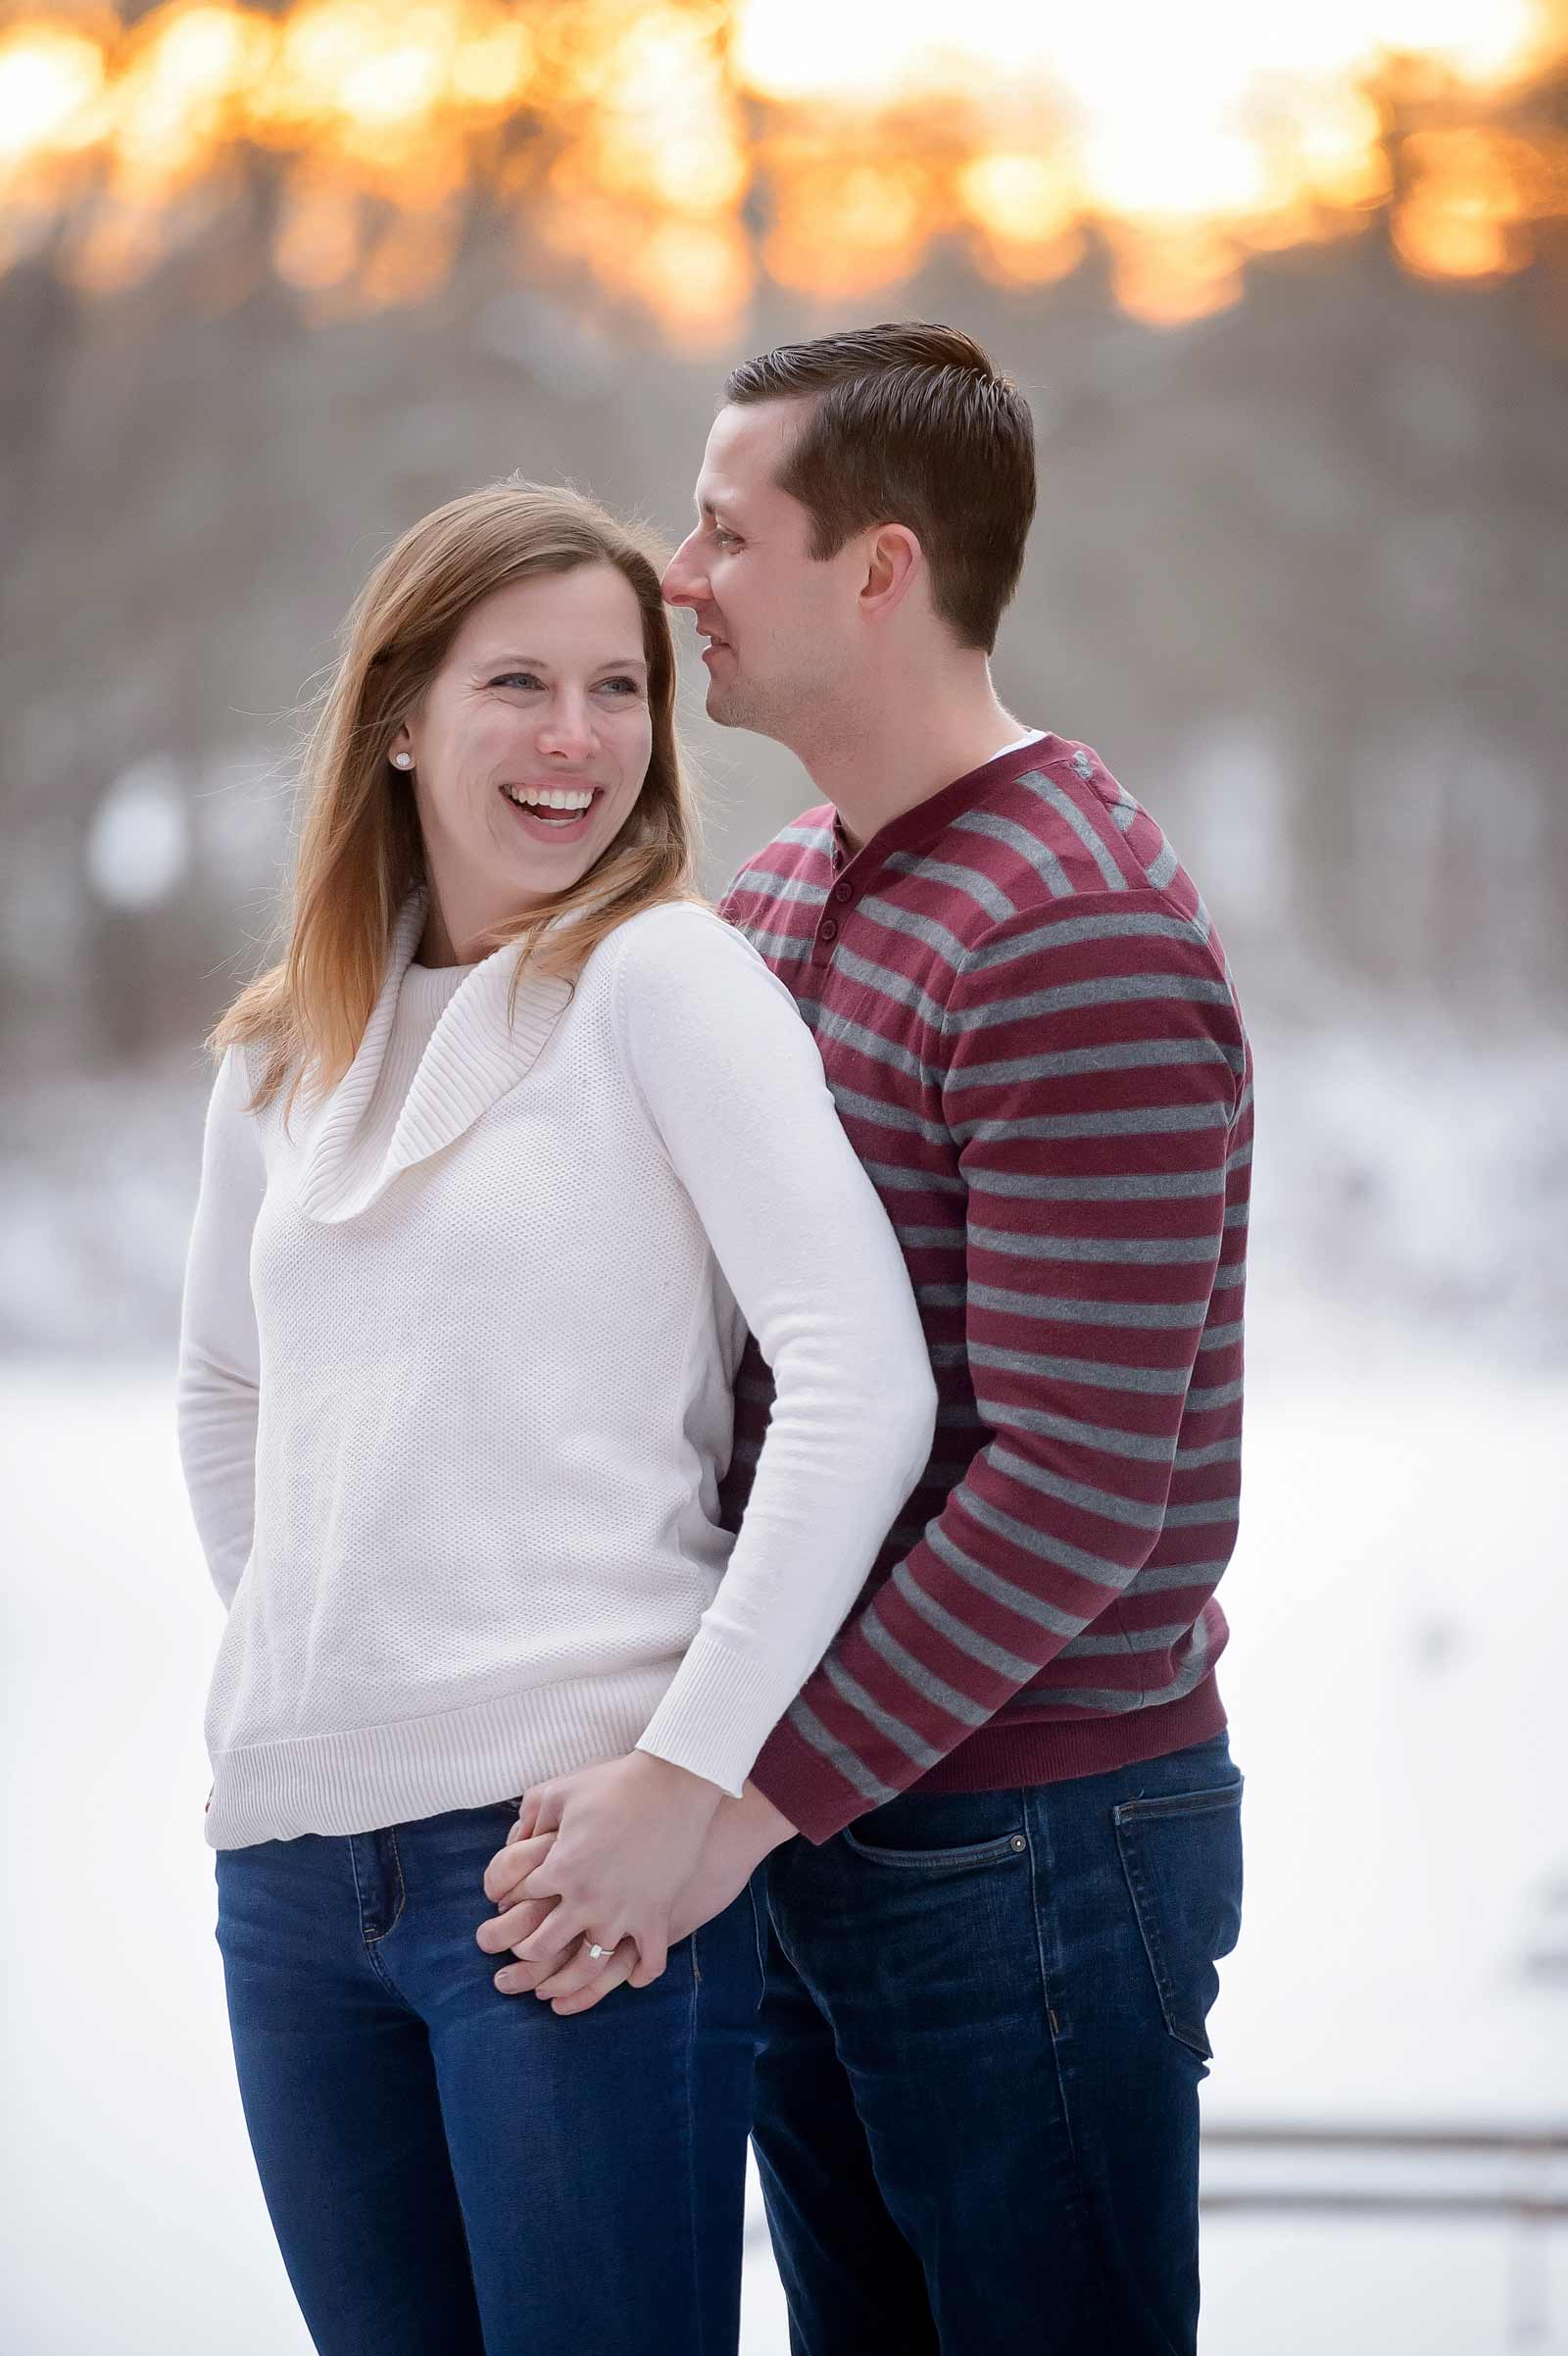 Bridget and Mike's winter engagement session in Manotick, Ottawa, Ontario, standing together in the snow at sunset